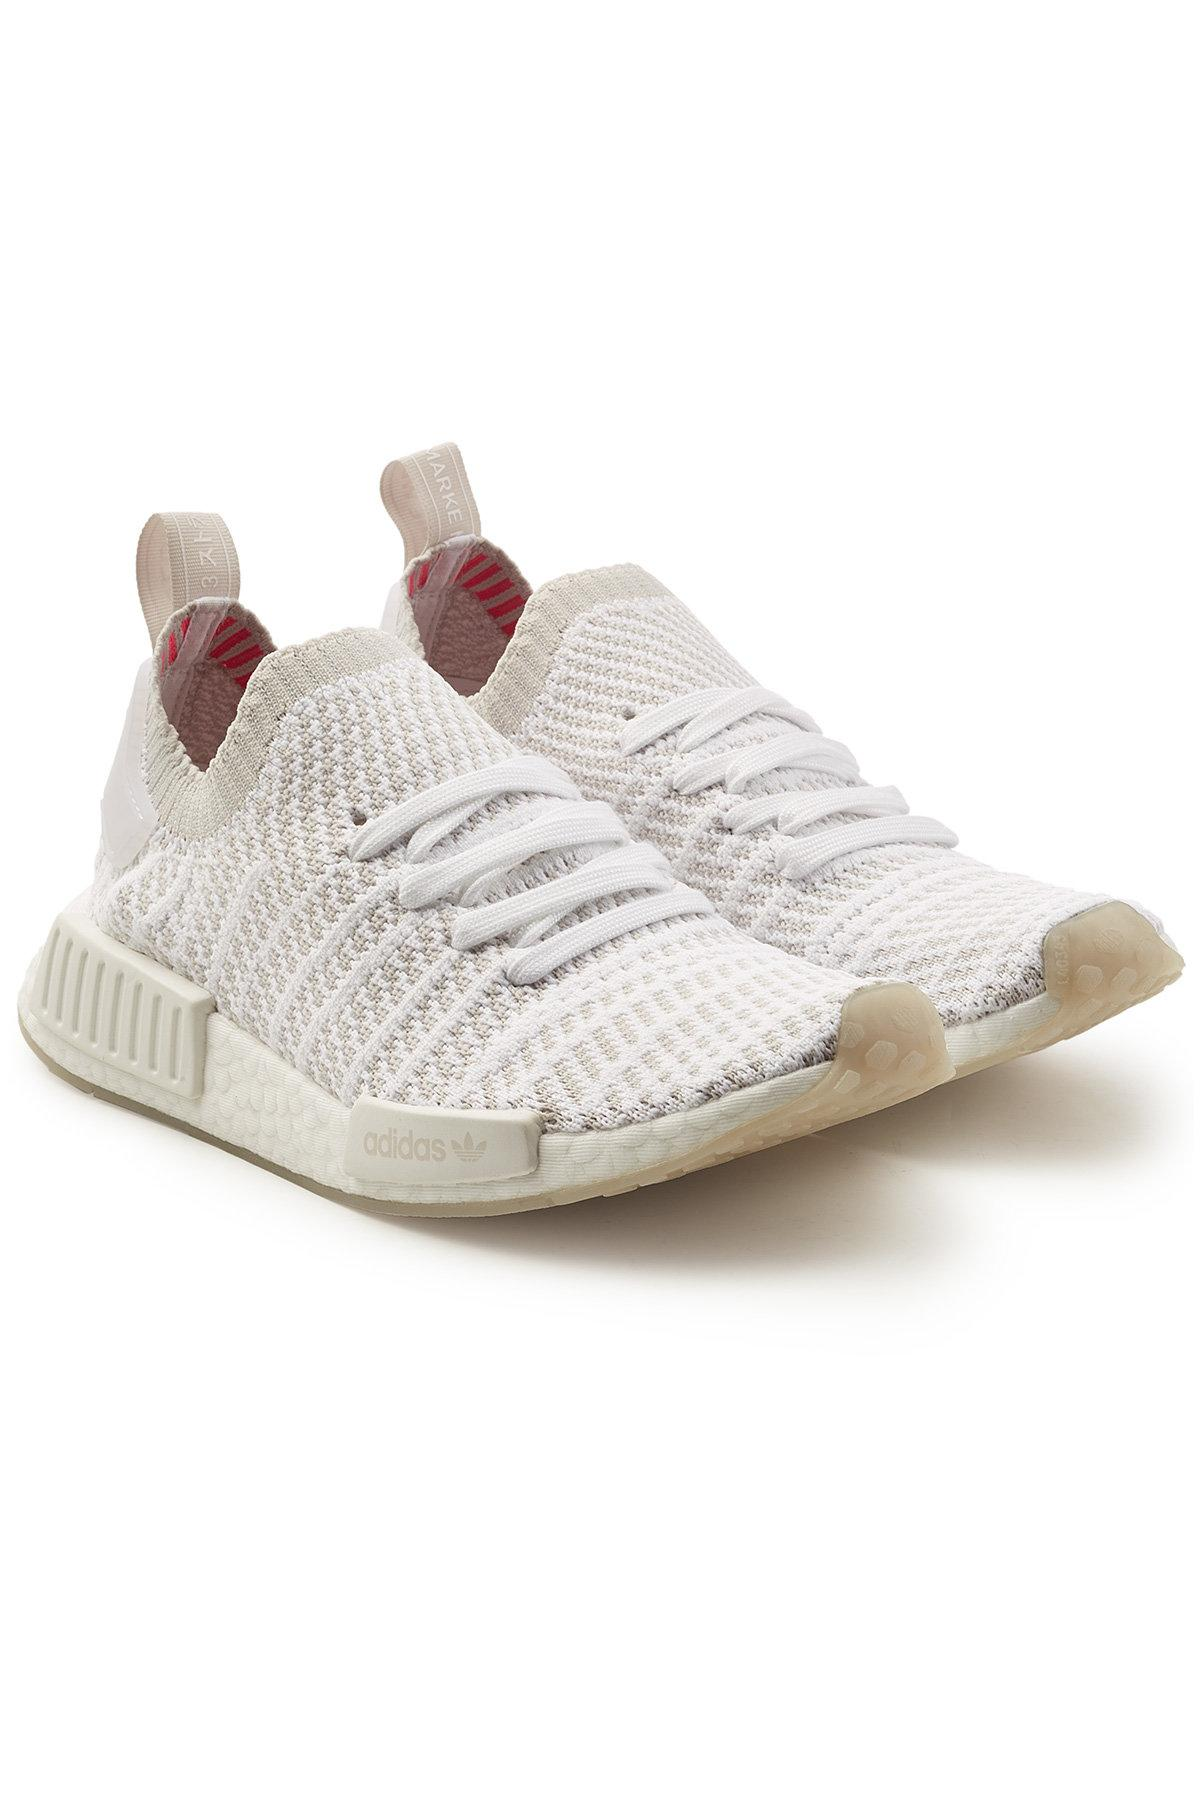 b46f1e8c4 Lyst - adidas Originals Nmd R1 Stlt Primeknit Sneakers in White